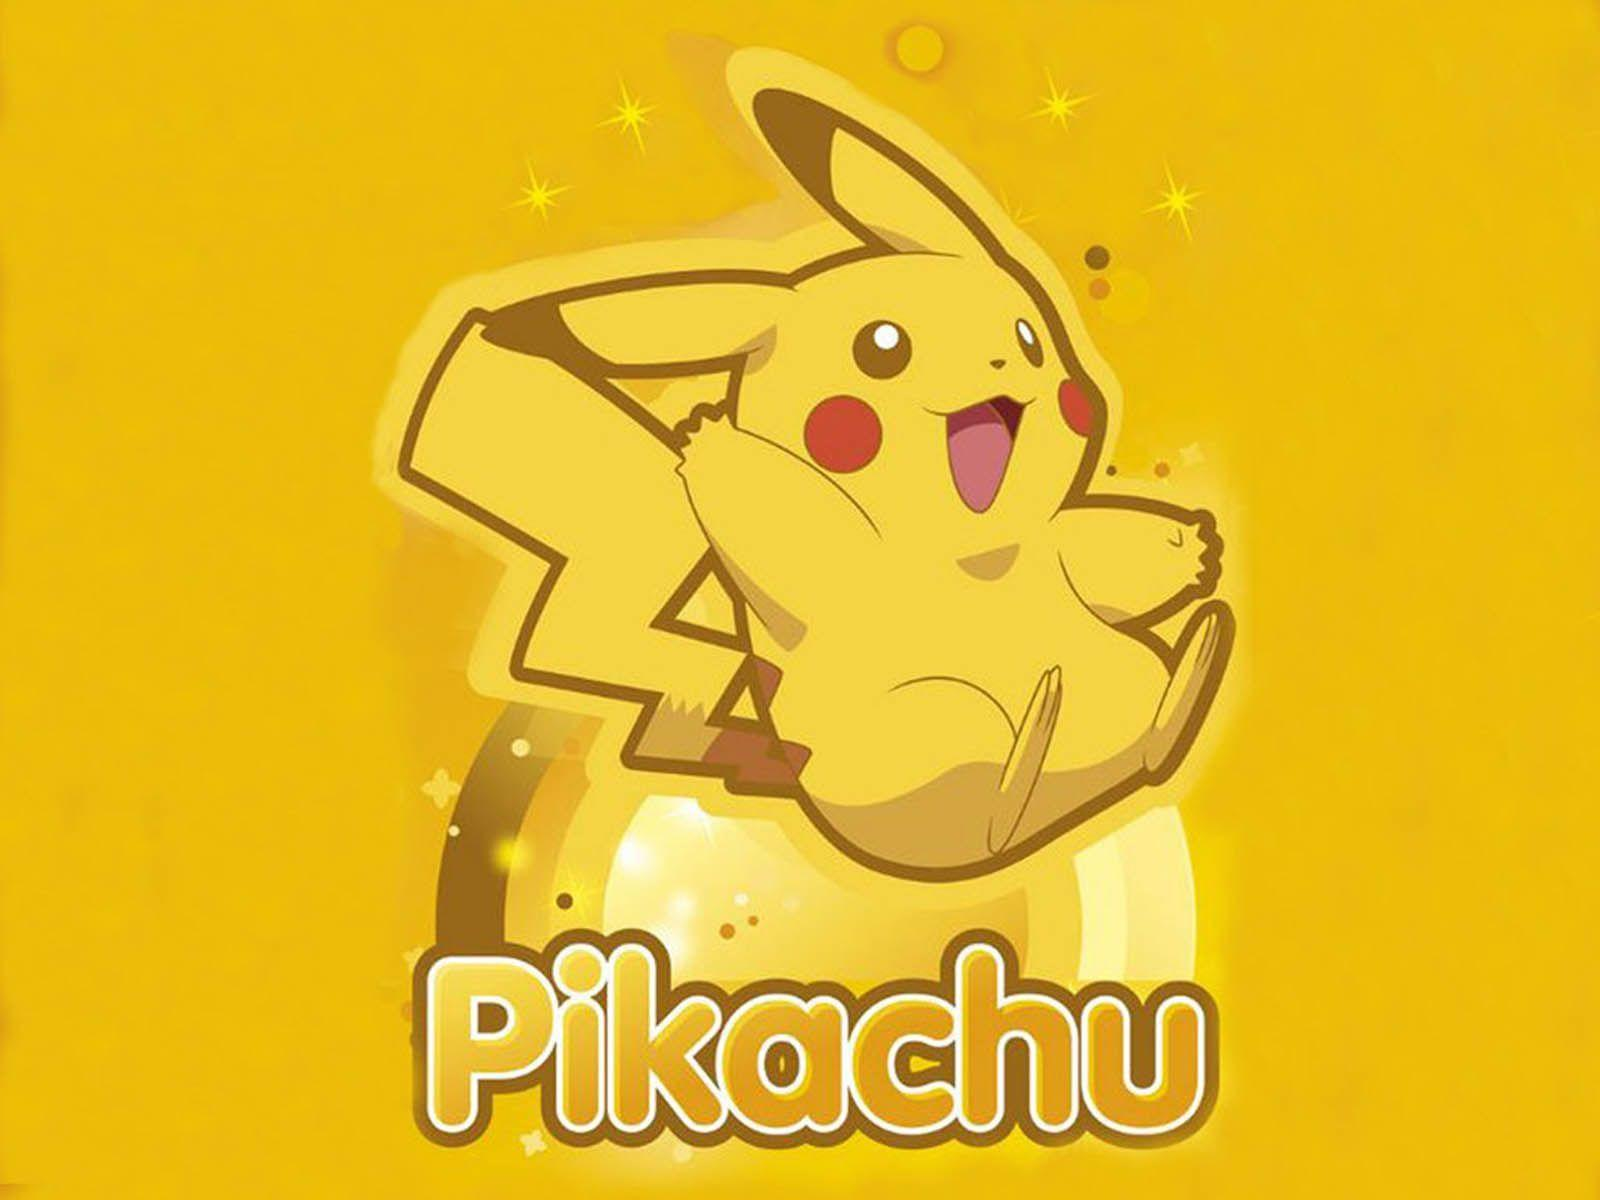 Pikachu Wallpaper 2